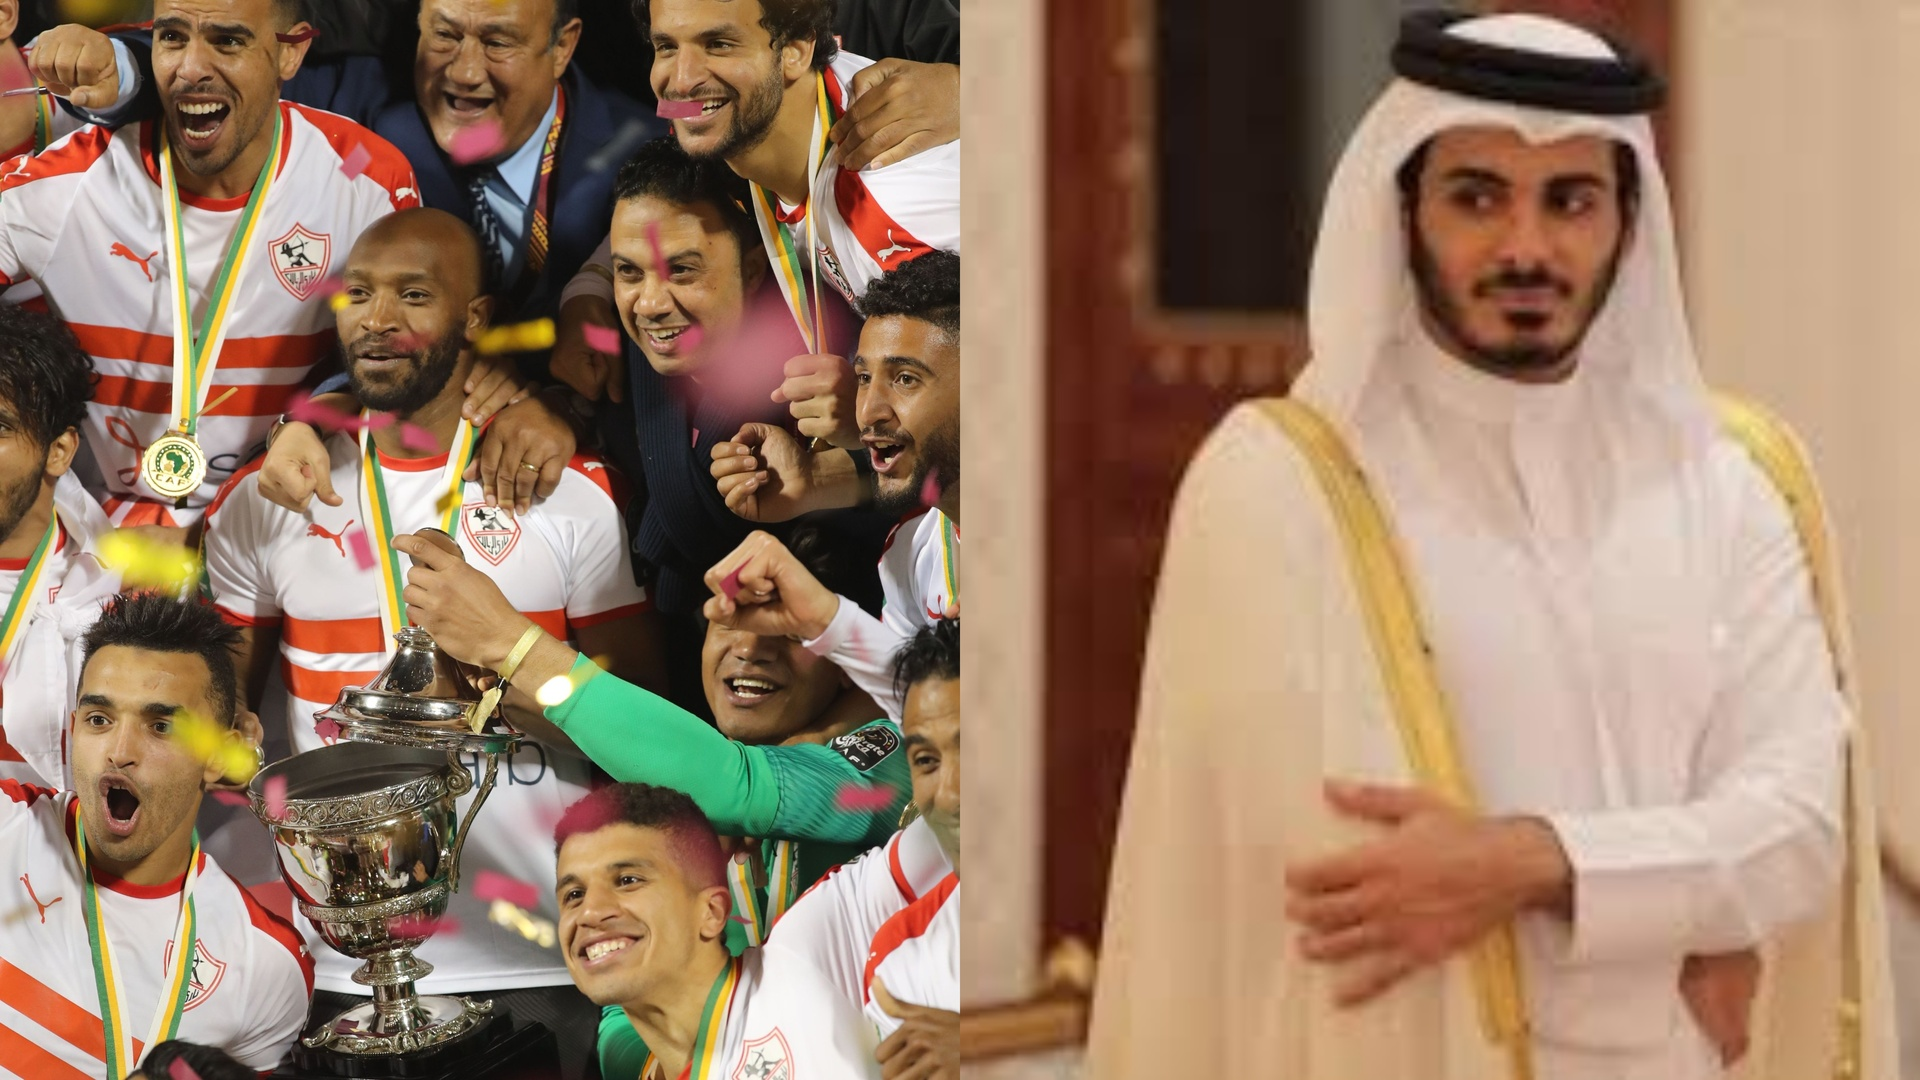 Brother of the Emir of Qatar sends a message to the Egyptian Zamalek